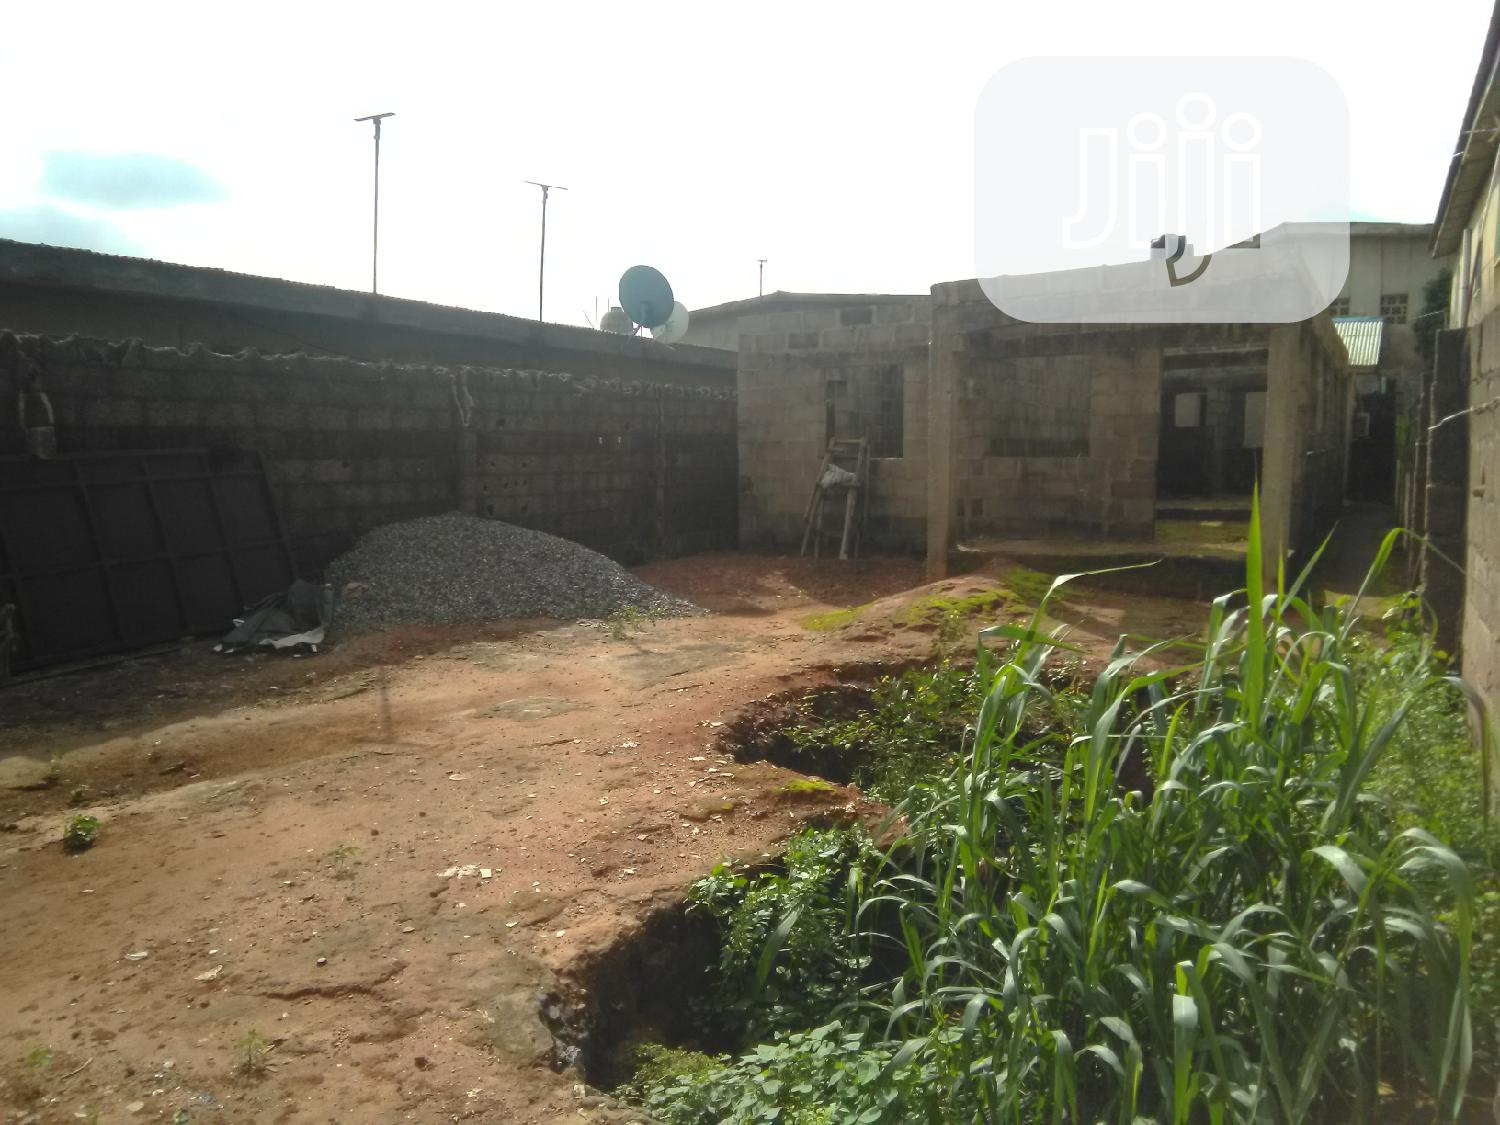 60/30 Land For Rent   Land & Plots for Rent for sale in Oshodi, Lagos State, Nigeria